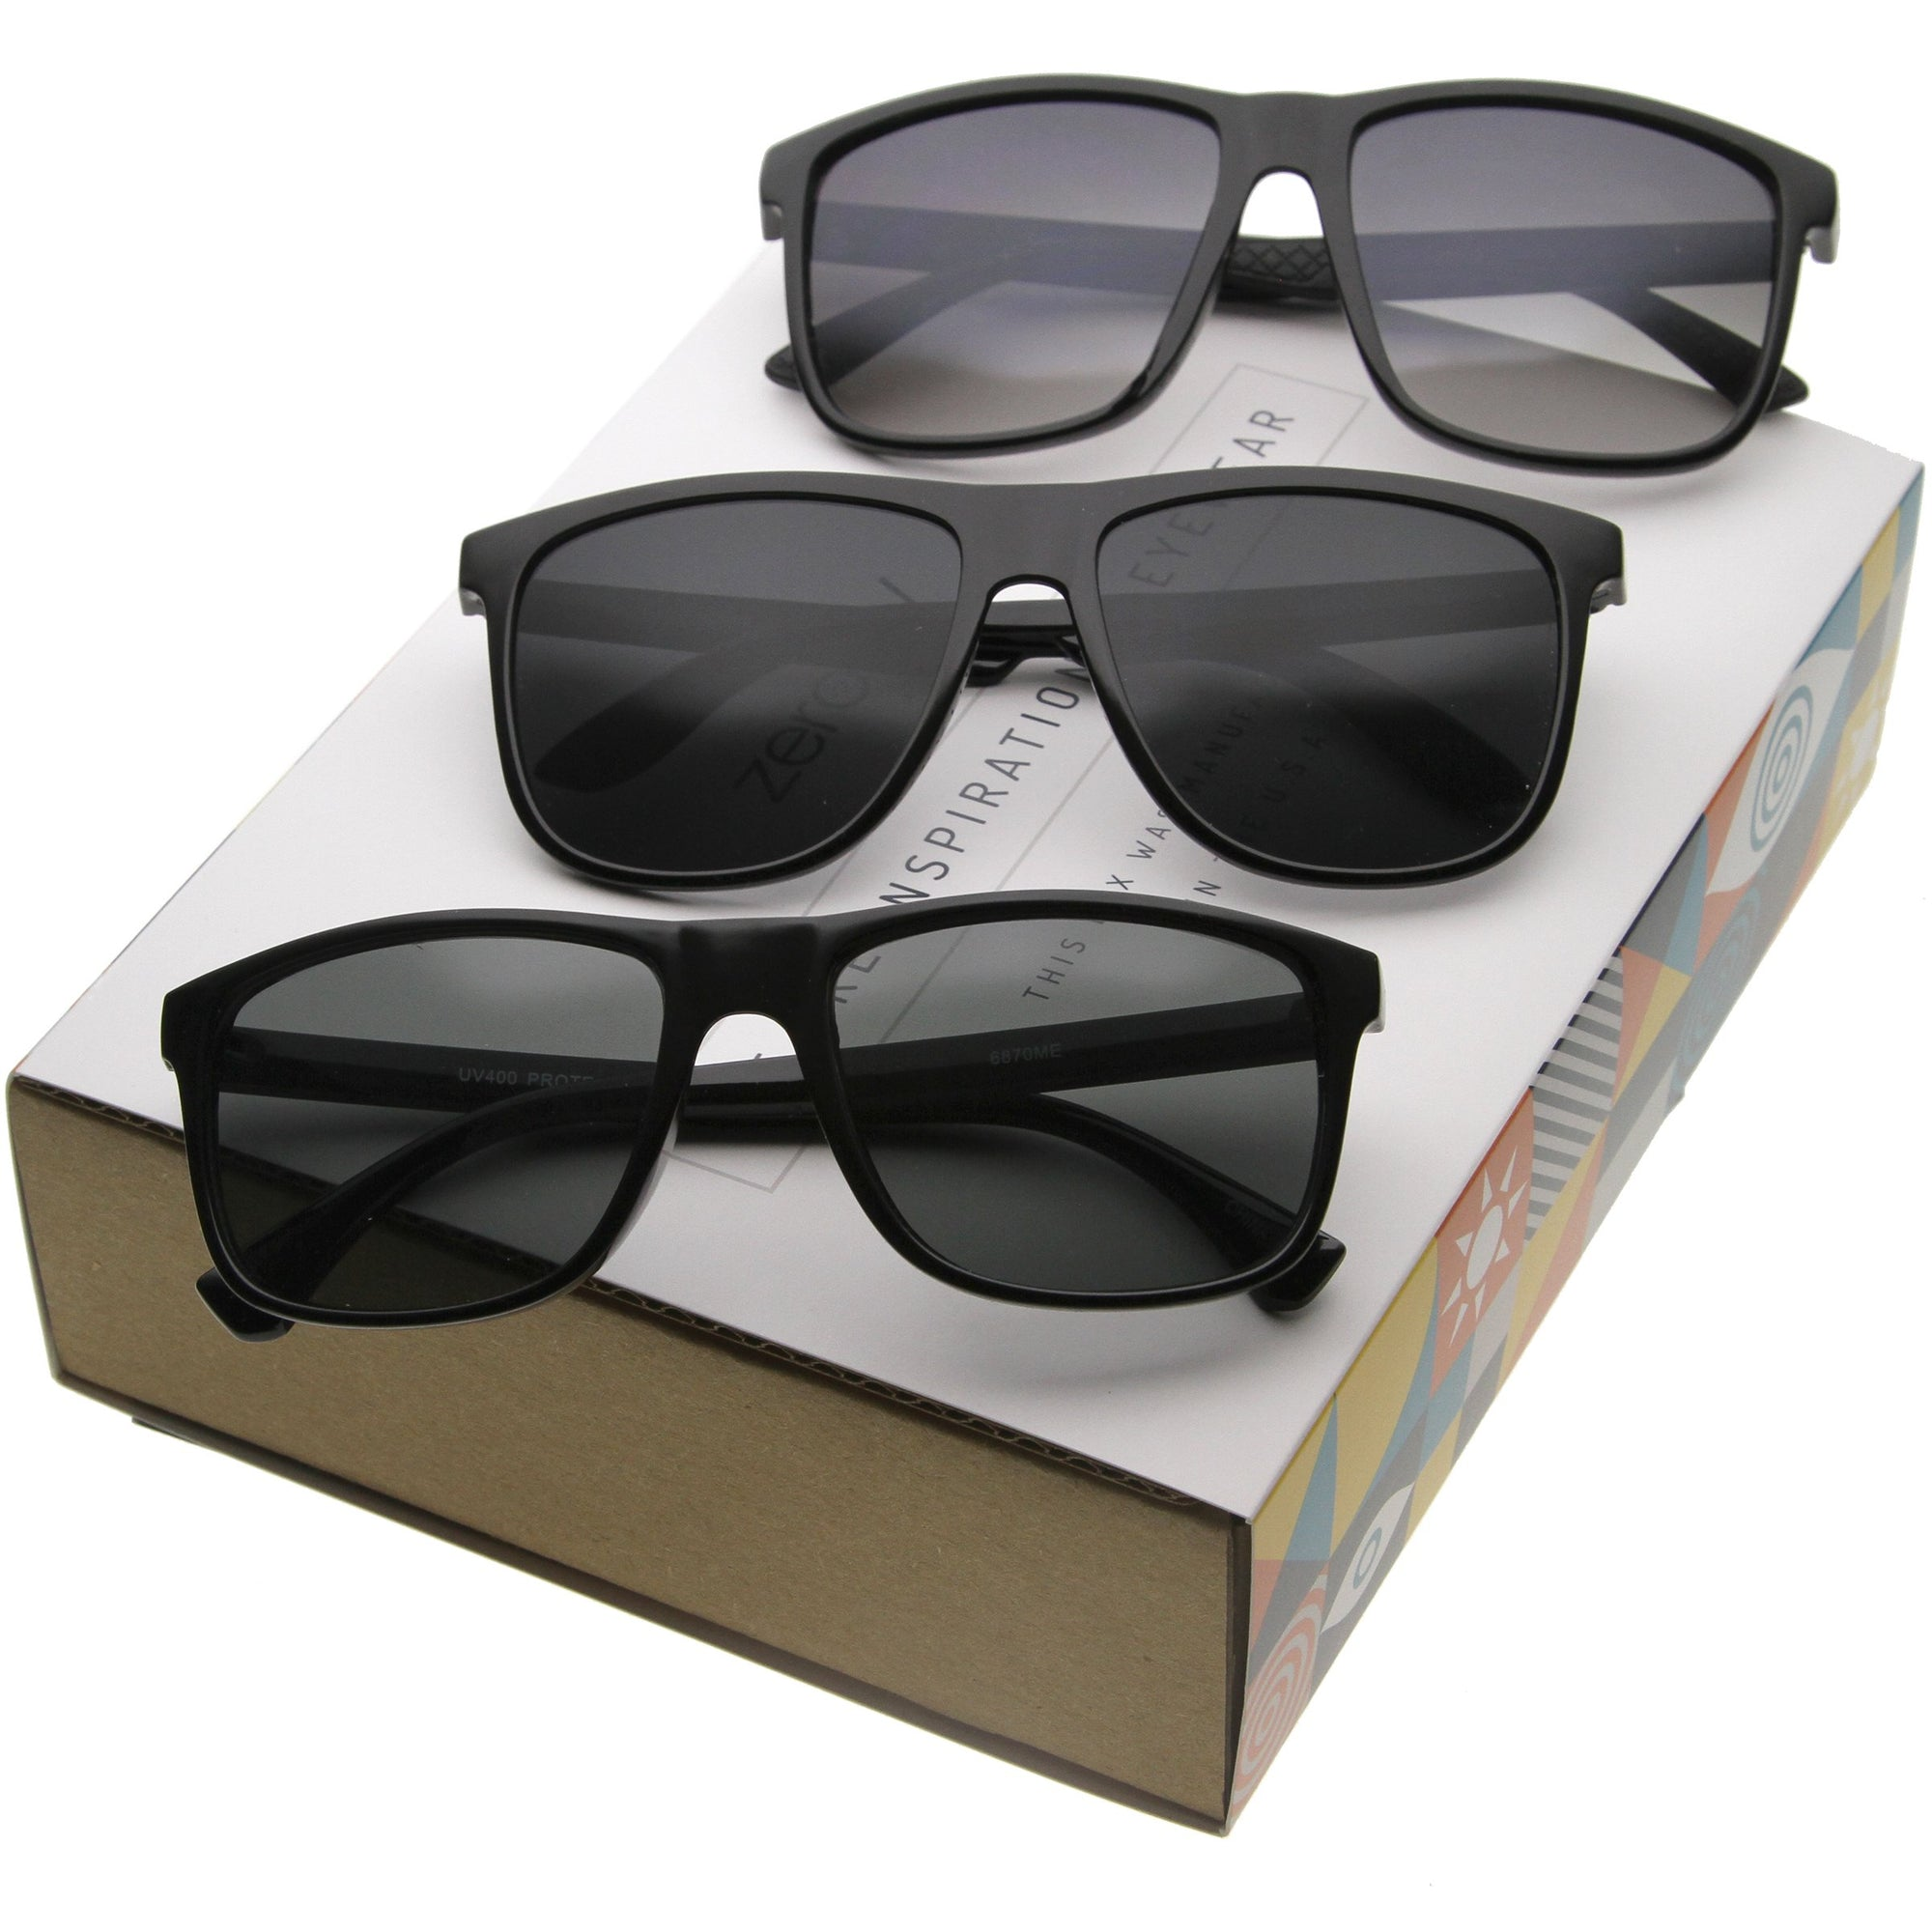 4831210bf2 ... Retro Modern Casual Lifestyle Horn Rimmed Sunglasses A351  Promo Box  ·  3 Pack Mix - Promo Box